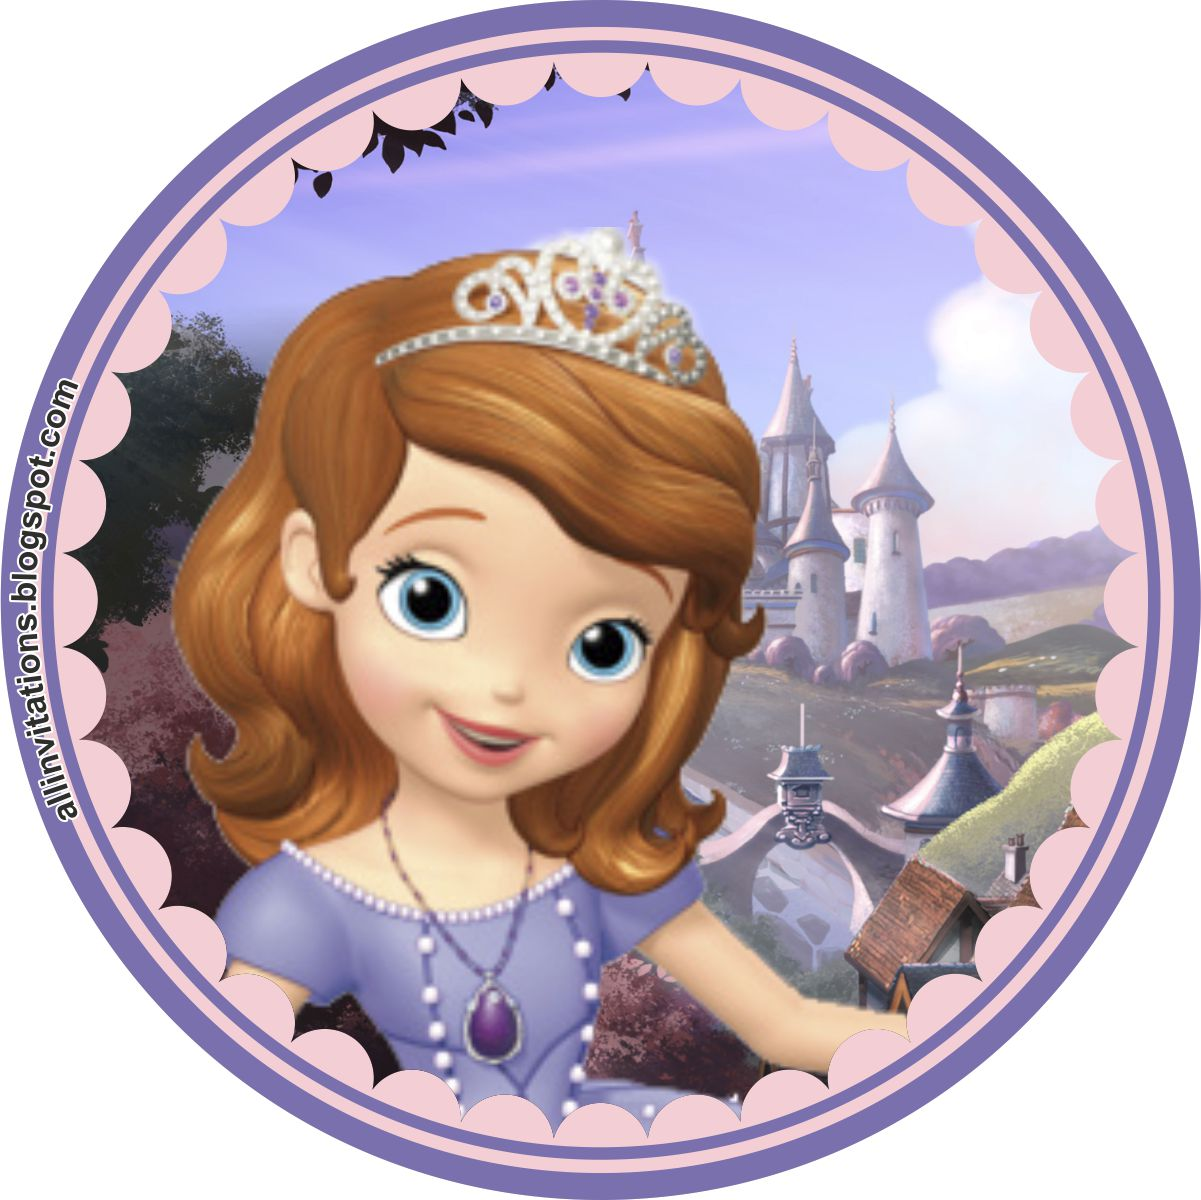 Princess sofia with lotion and answering questions 3